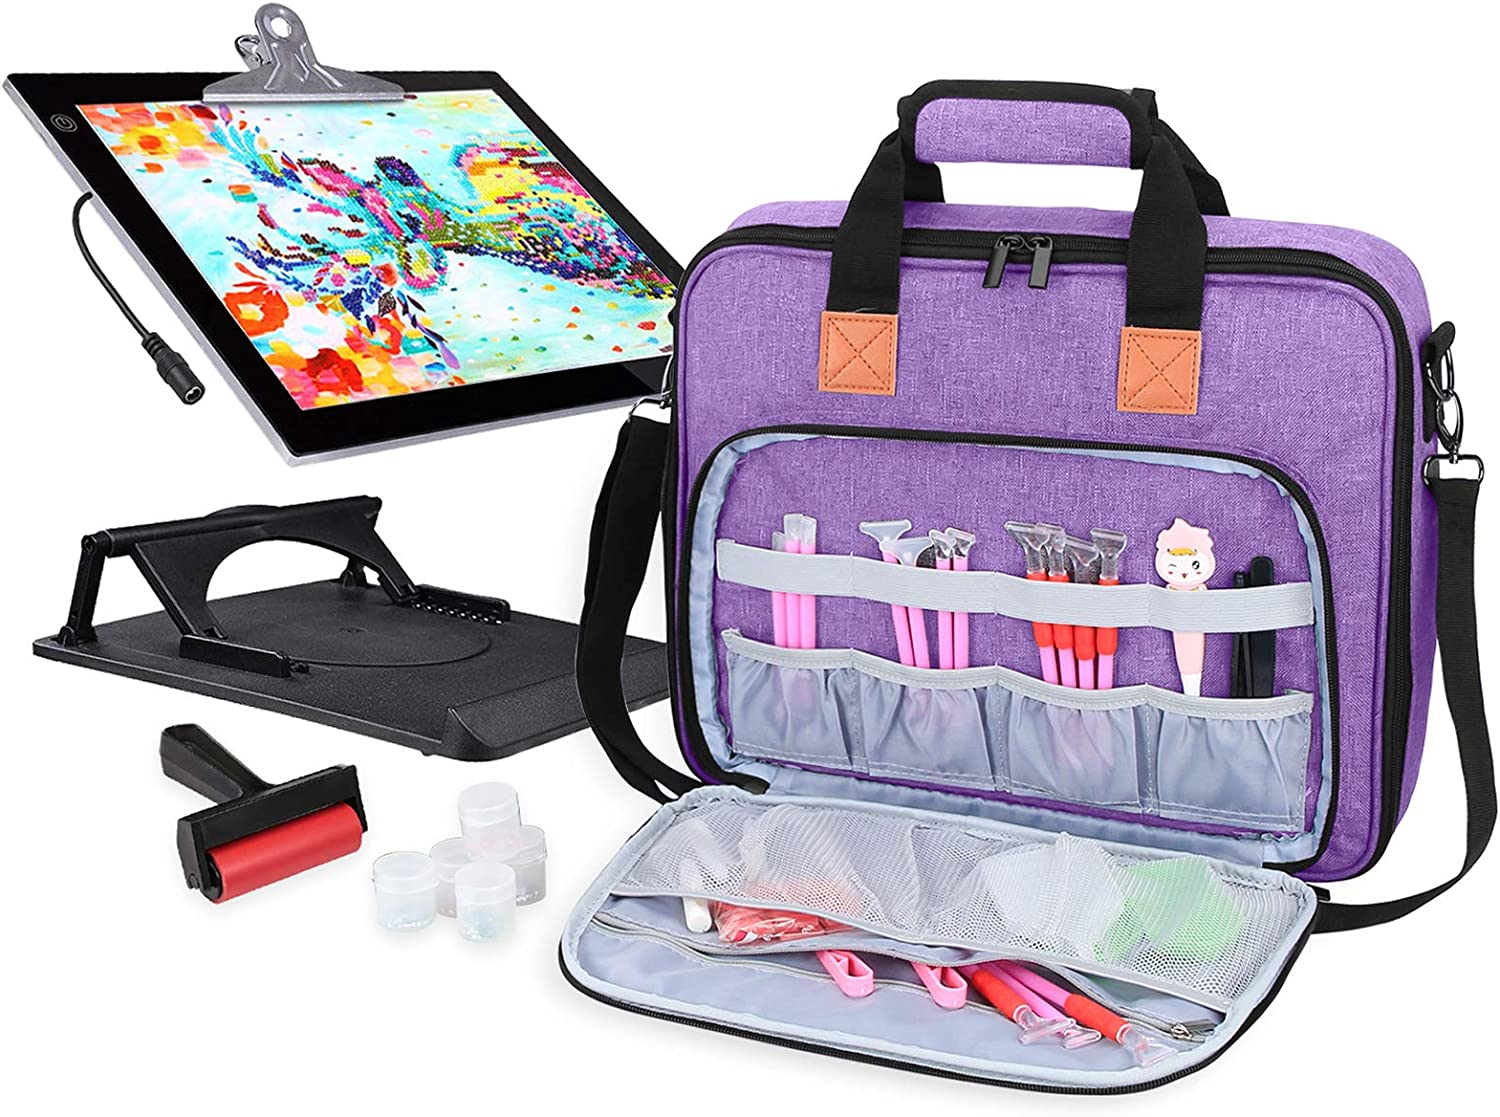 Scraper and Plate Diamond Painting Tools Accessories Laptop Case with Diamond Painting pens Hand-held Protective Bag for A4 Light Pad